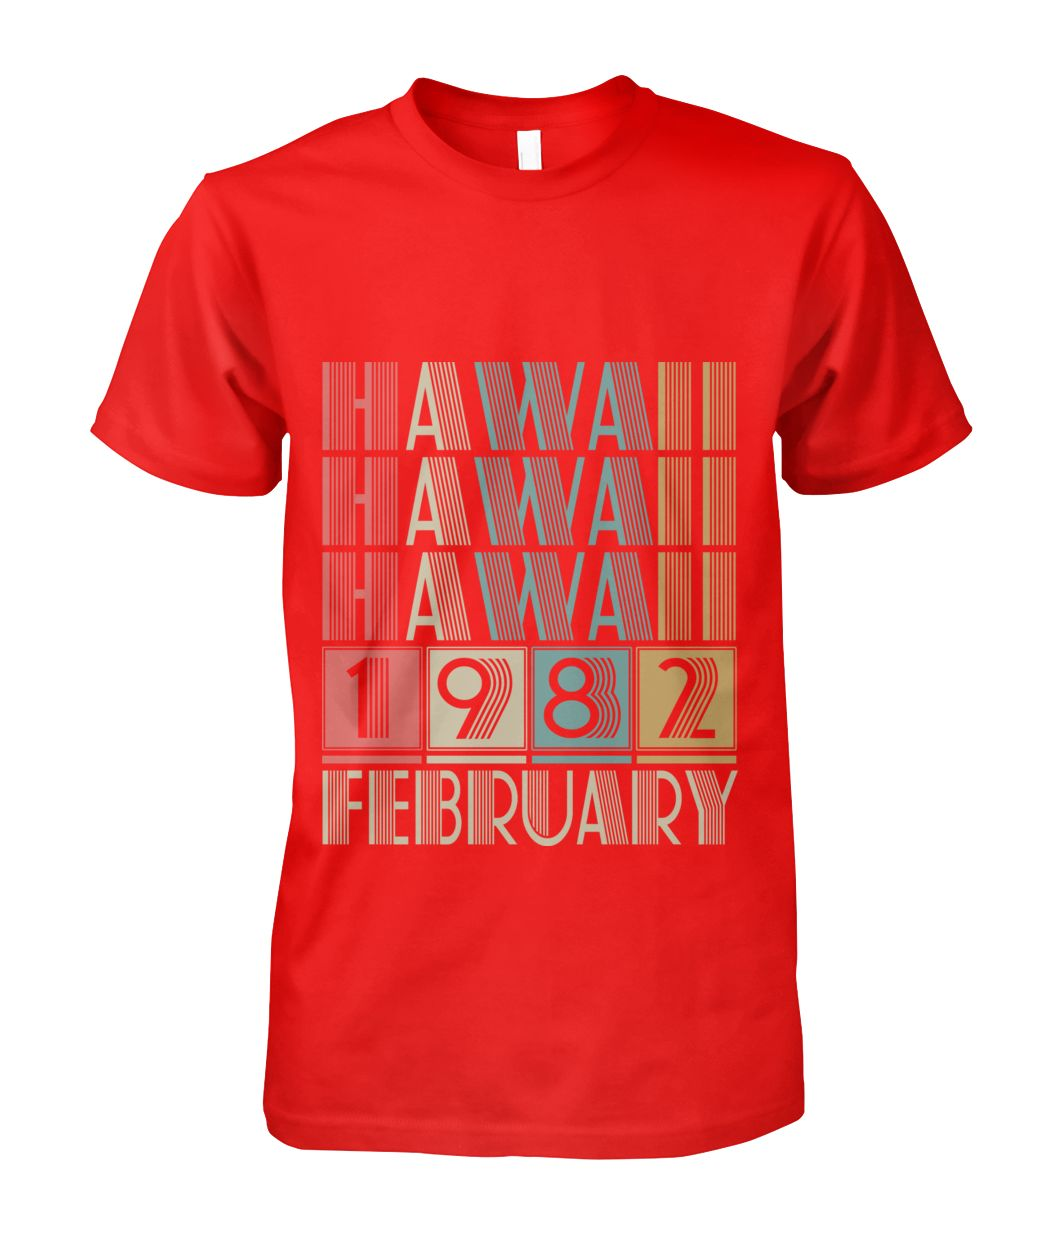 Born in Hawaii in February 1982 t shirt-Short Sleeves - TEEHOT.COM